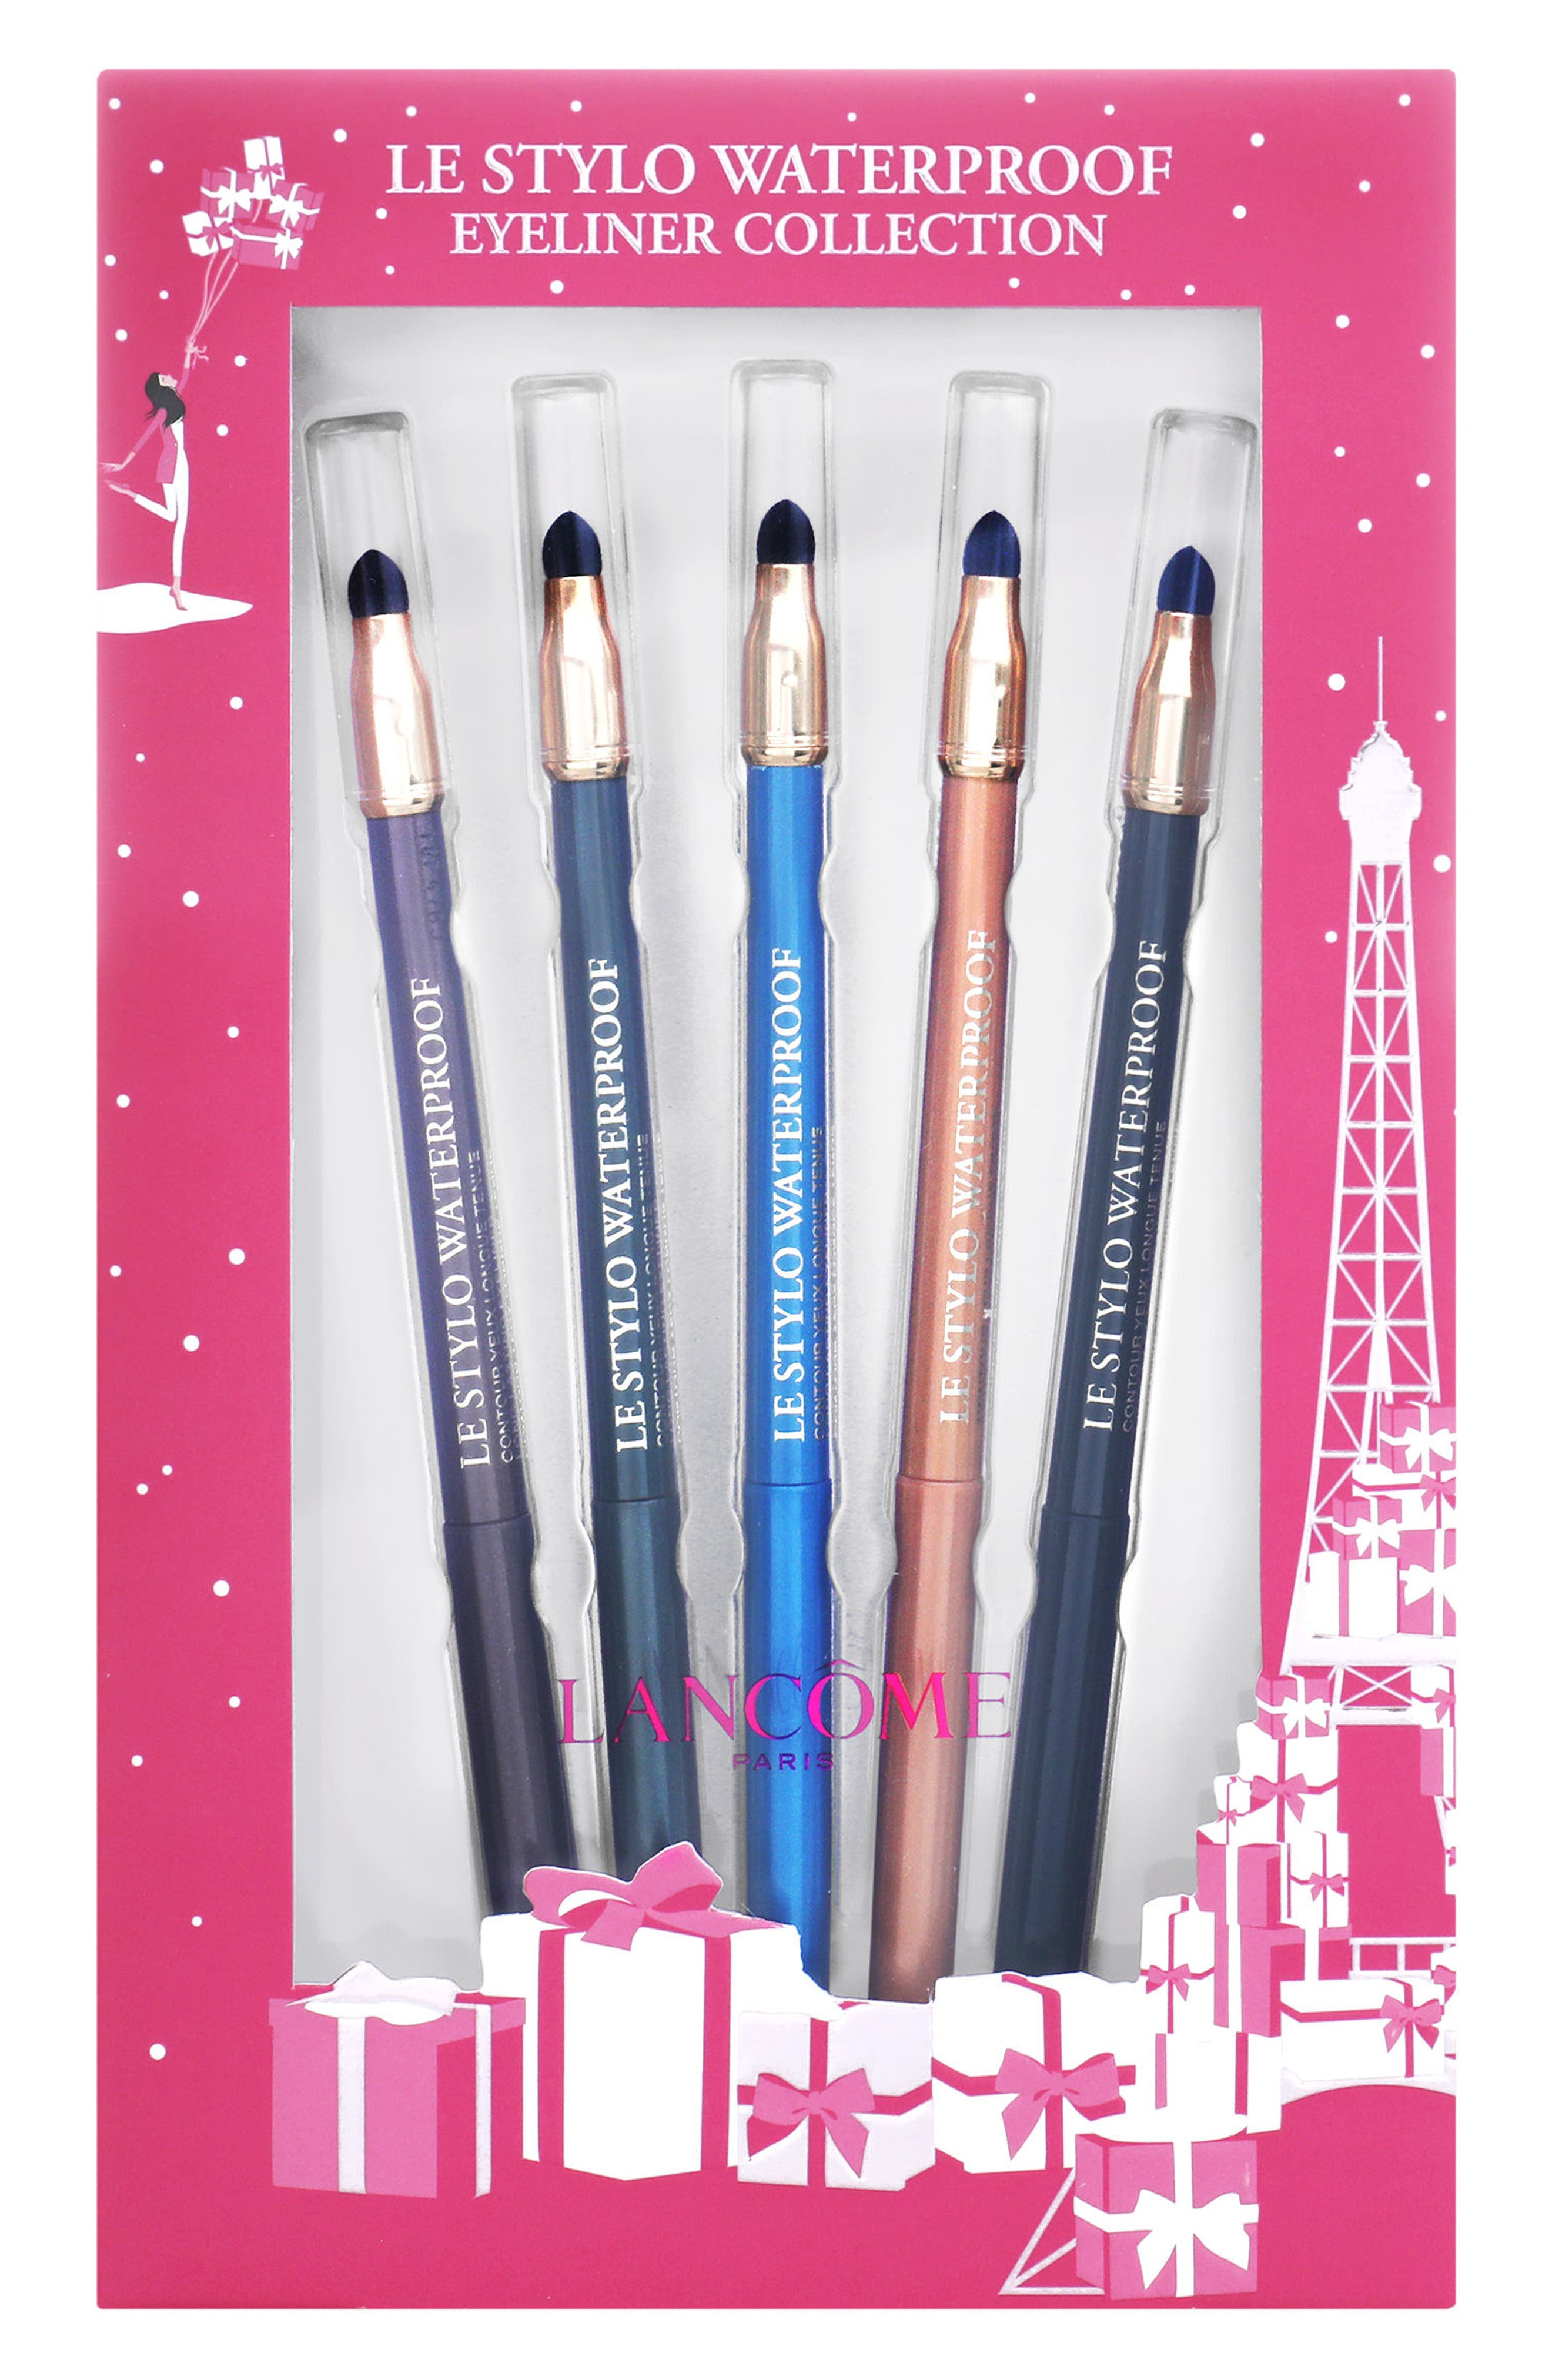 Lancôme Le Stylo Waterproof Eyeliner Collection ($135 Value)